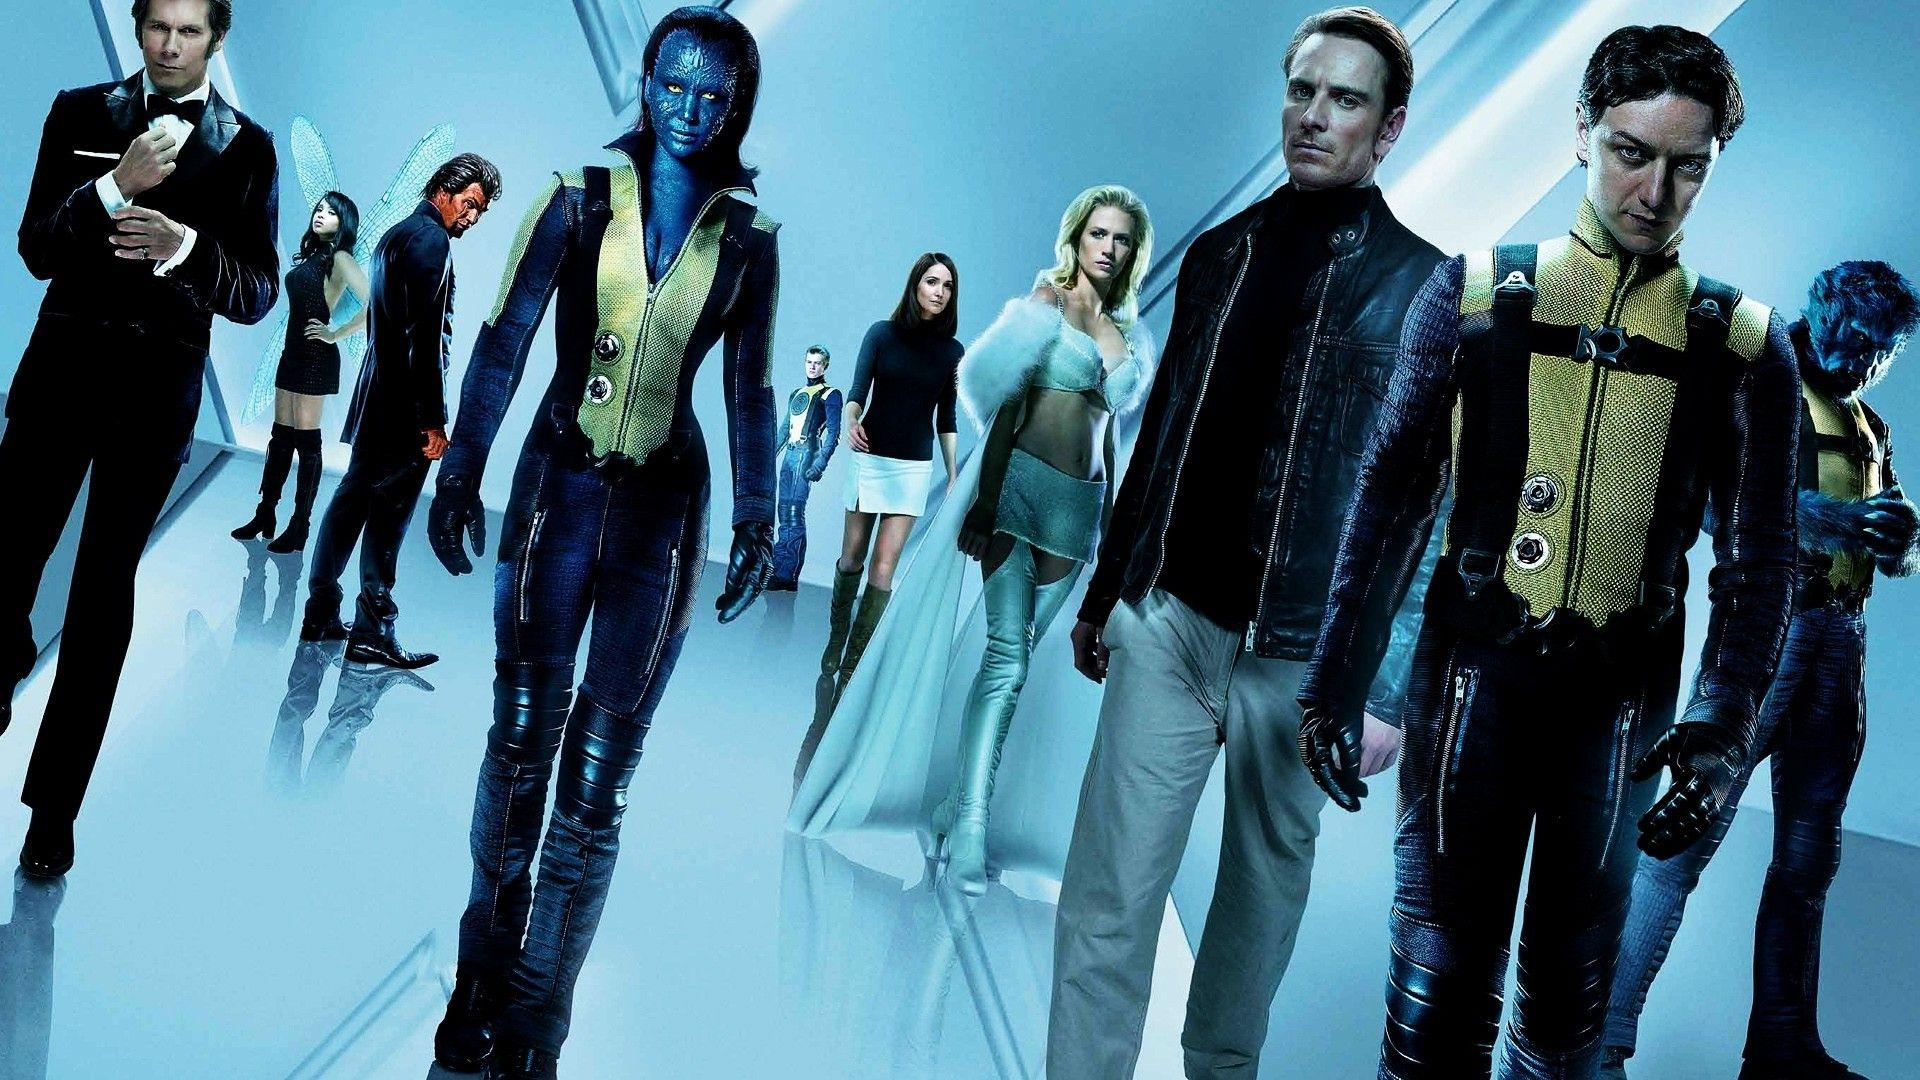 movies, X Men: First Class, Magneto, Charles Xavier, Mystique